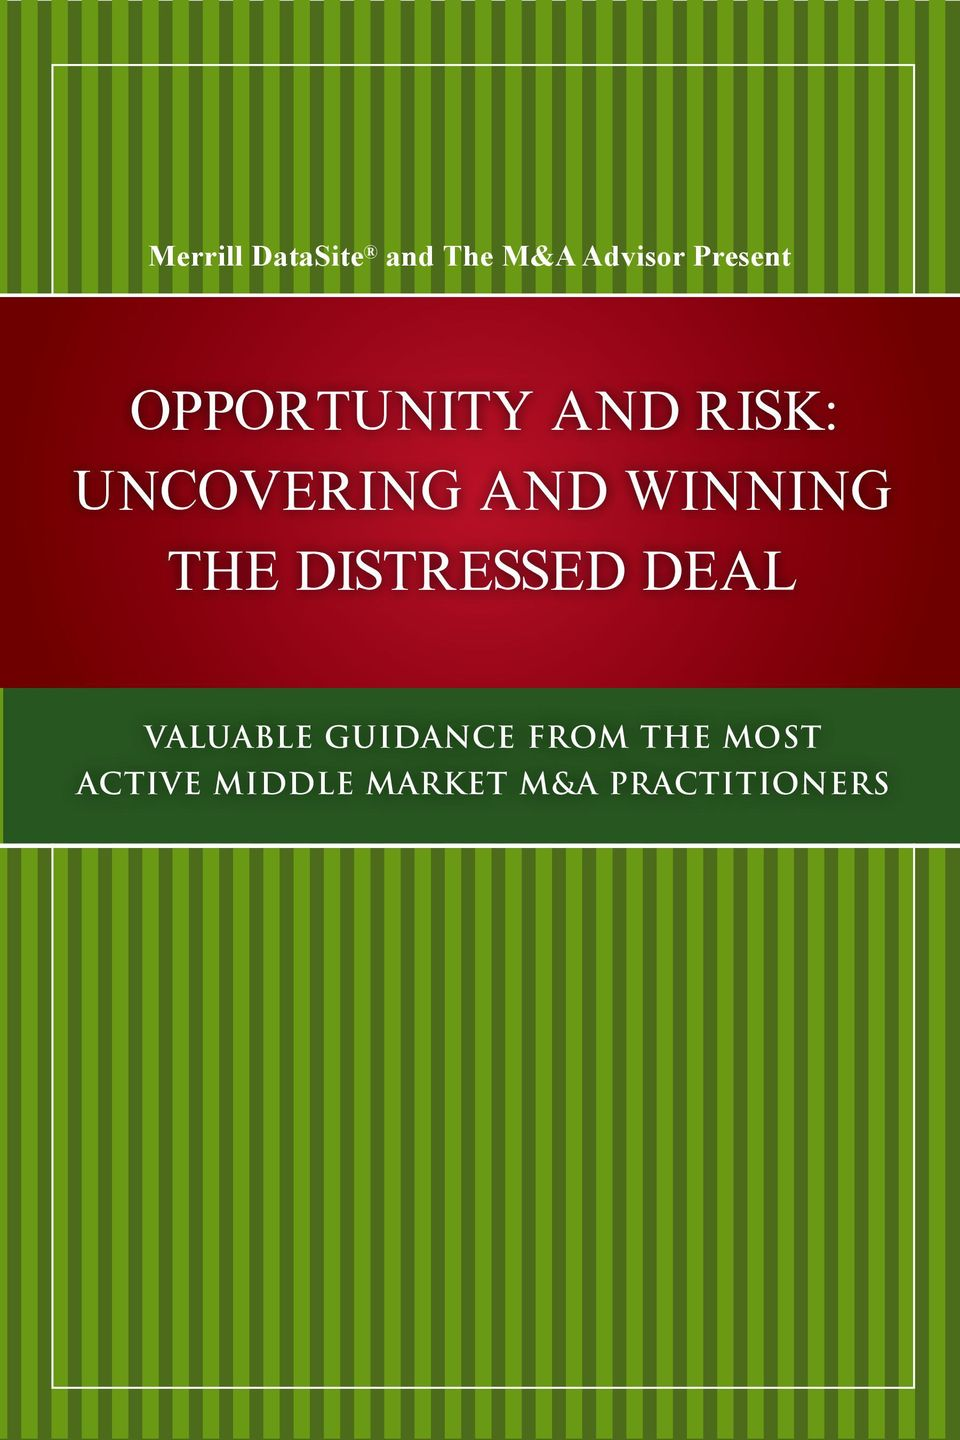 the Distressed Deal Valuable Guidance from